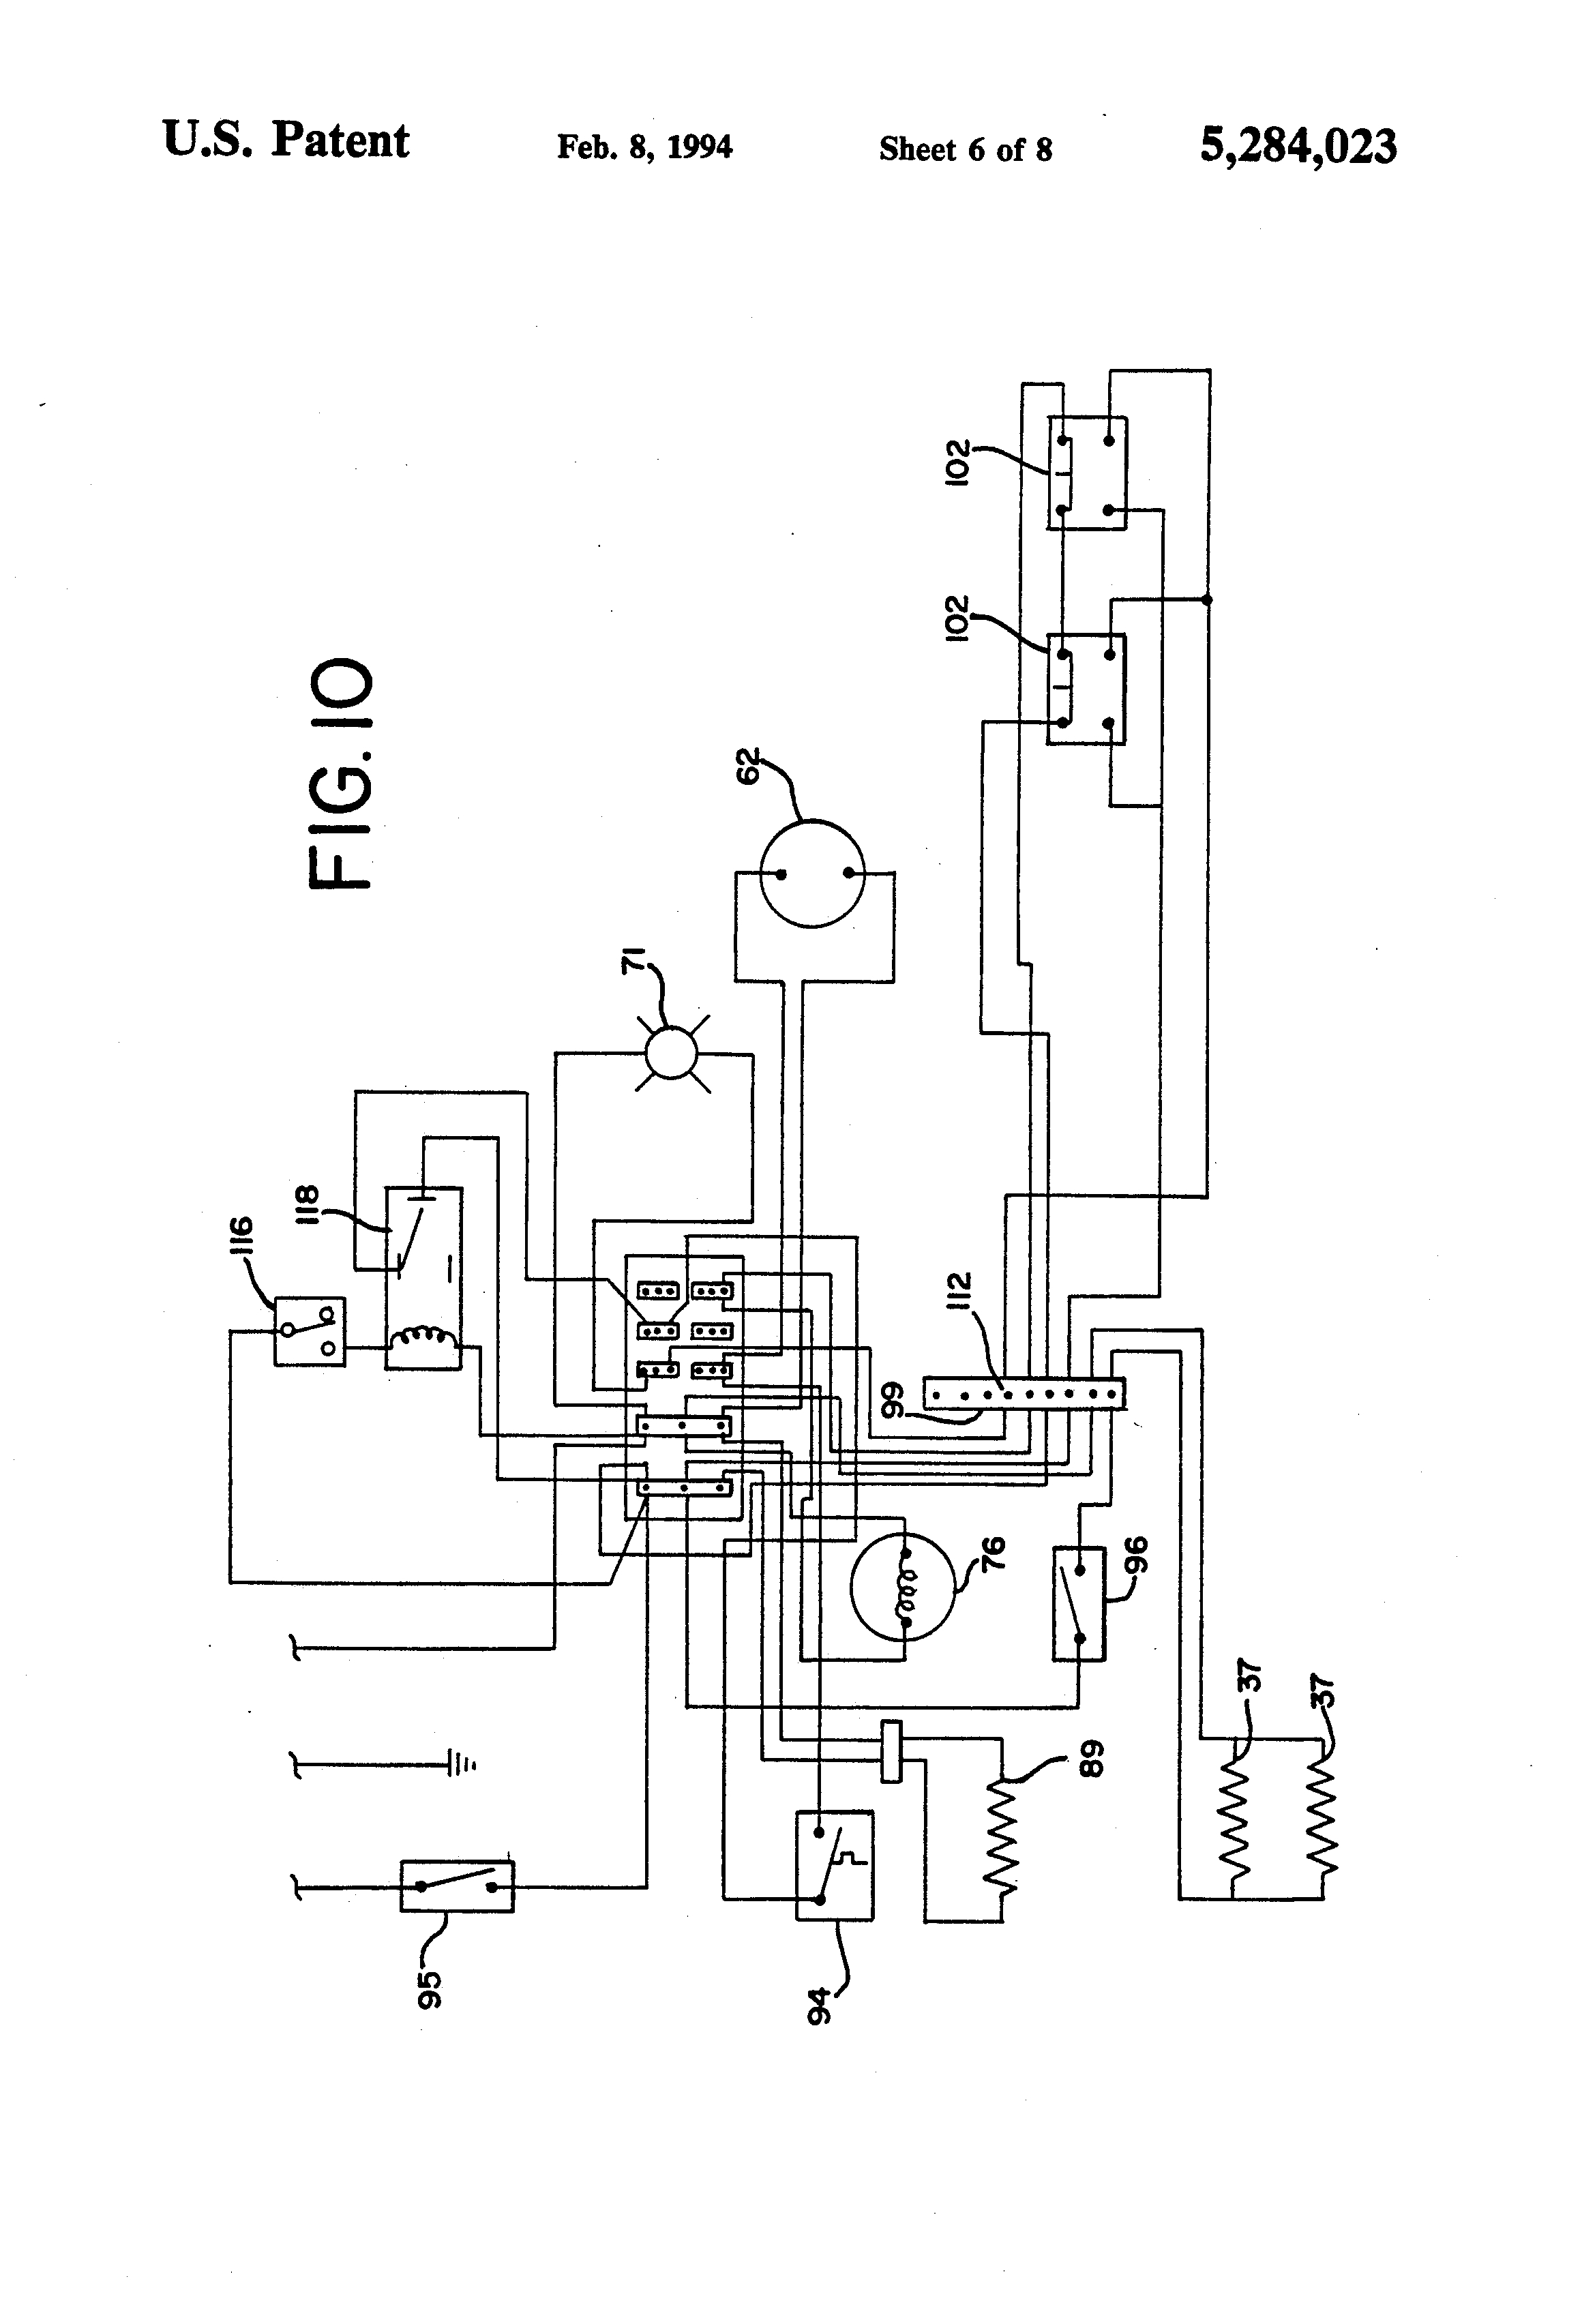 defrost termination fan delay switch wiring diagram Collection-defrost termination fan delay switch wiring diagram Collection Diagram Defrost Termination Switch Wiring Diagram LED 3-b